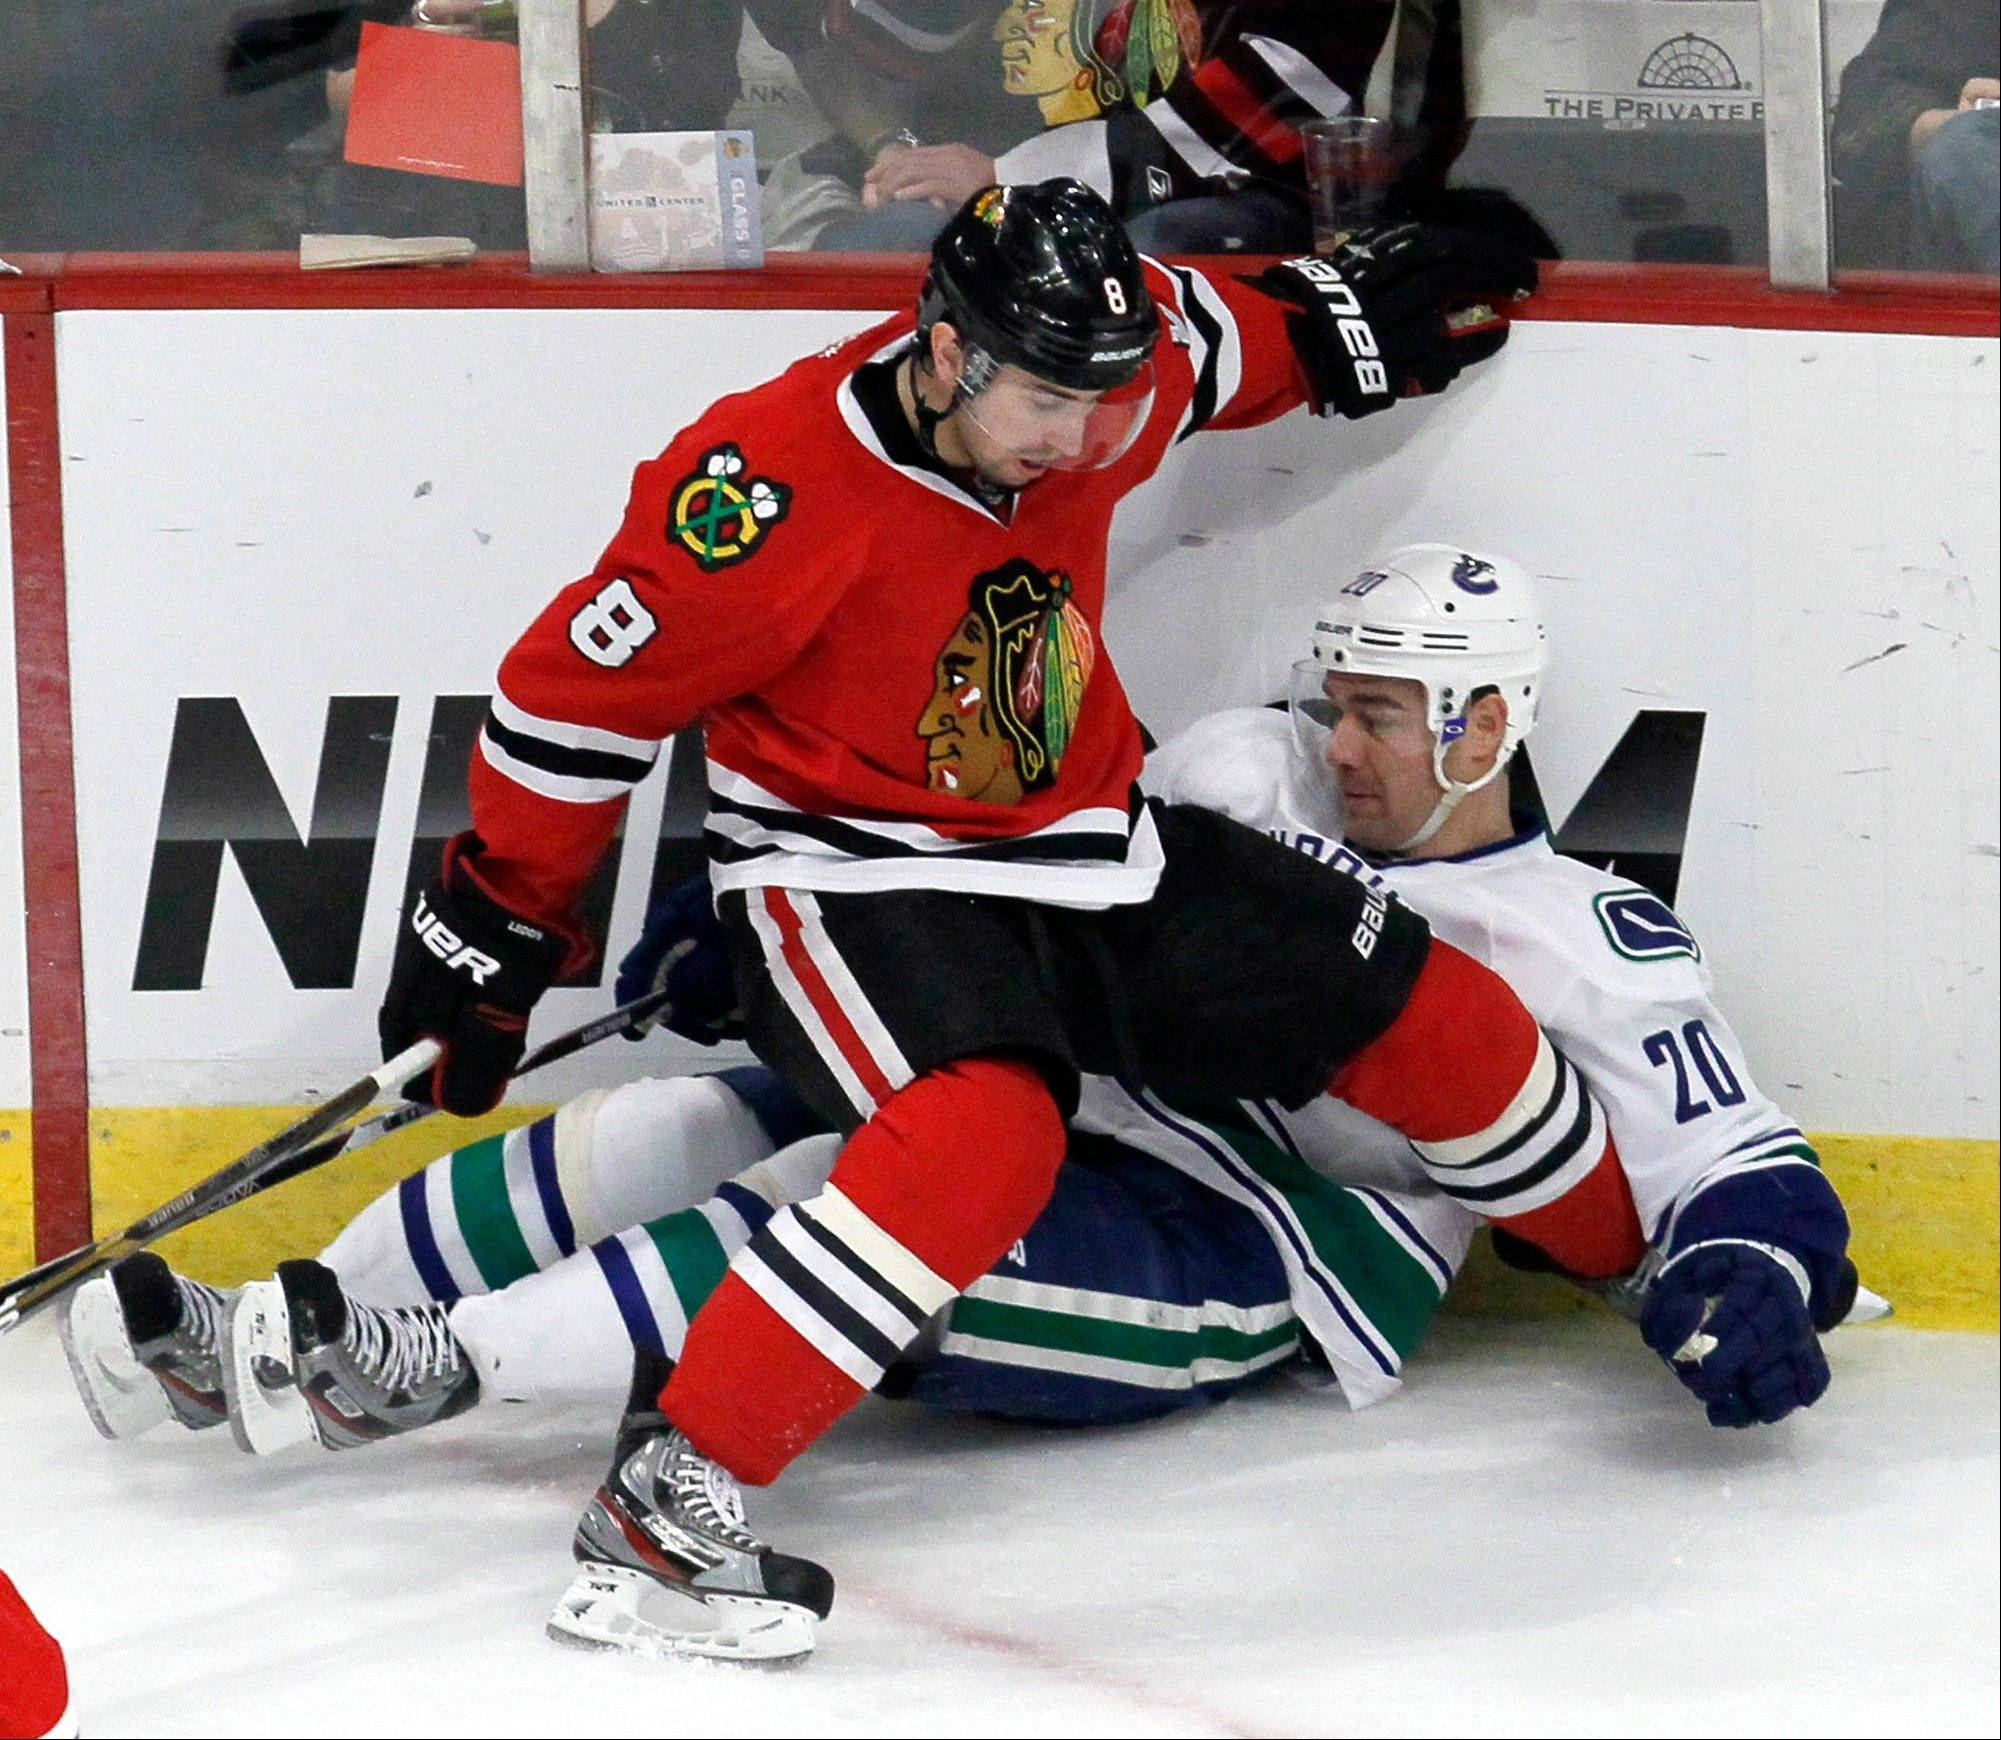 Match worthy of Blackhawks, Canucks